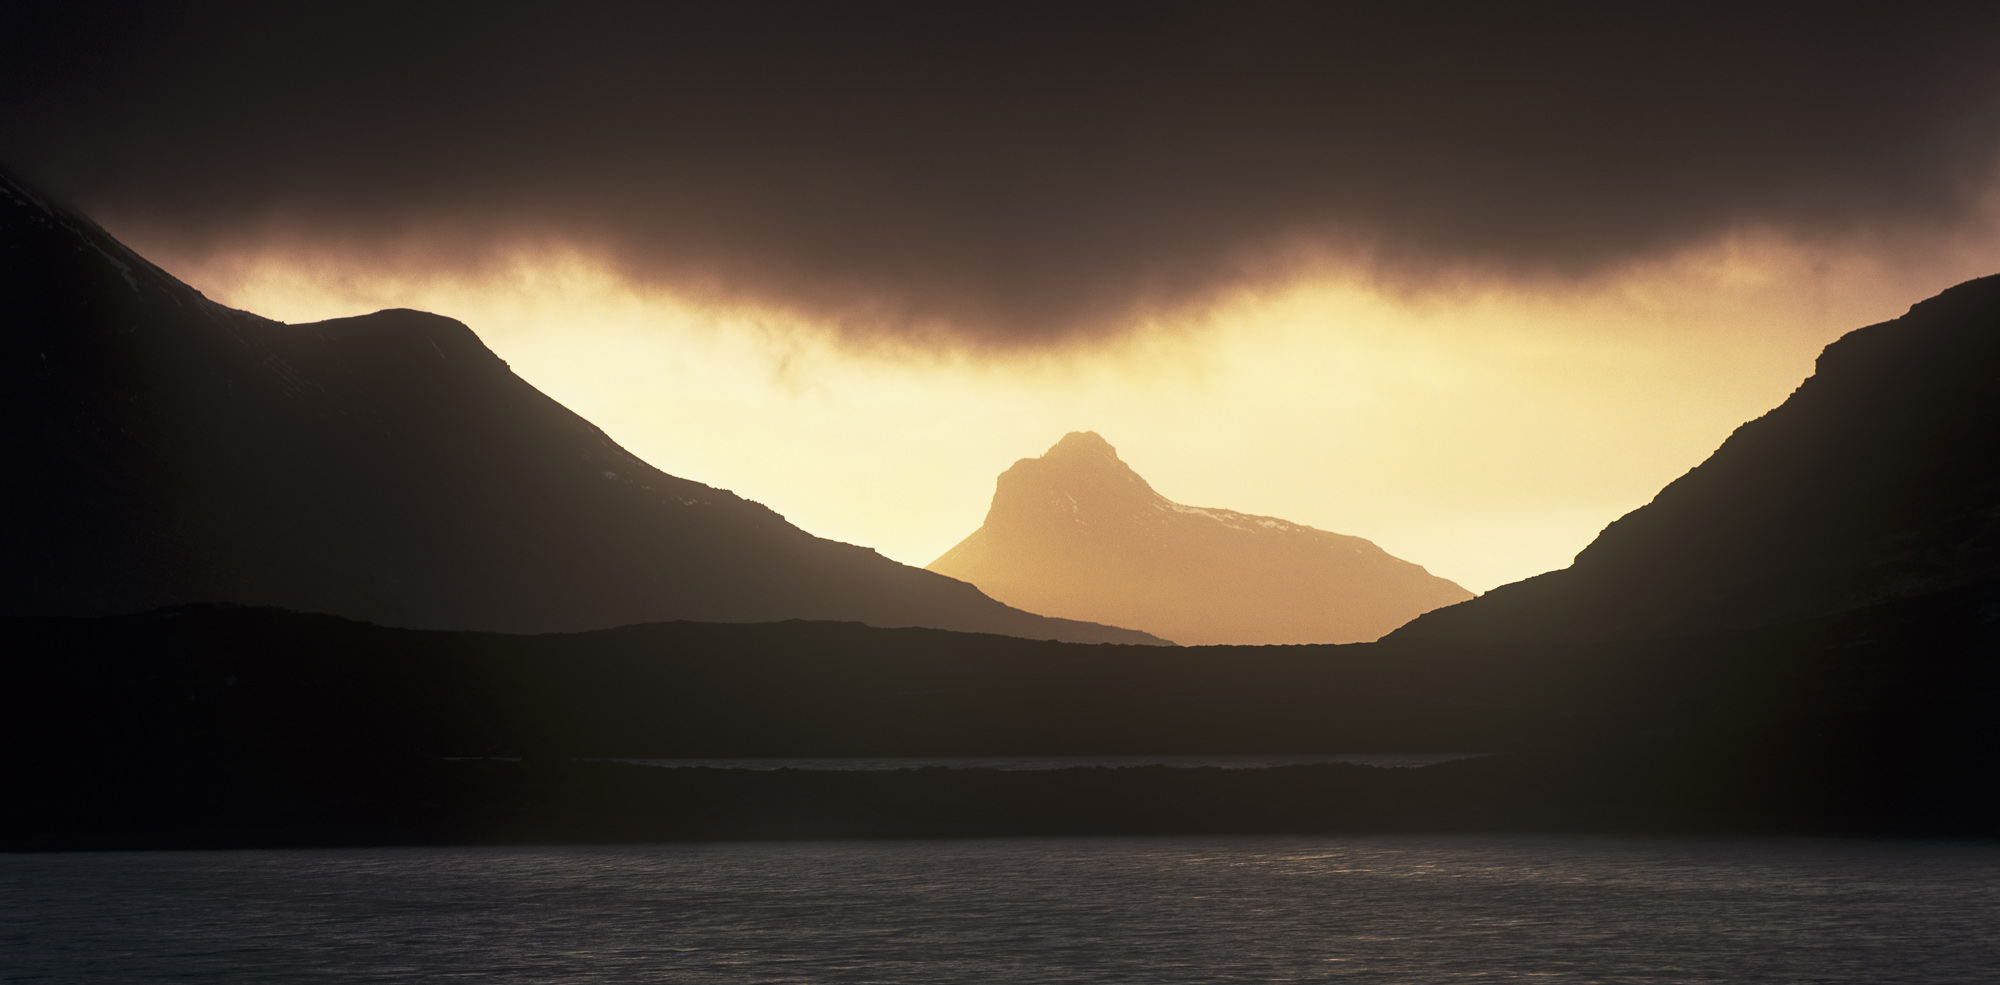 Stac Pollaidh is the most distinctive mountain in the Inverpolly Reserve looking volcanic in its appearance. The brief...